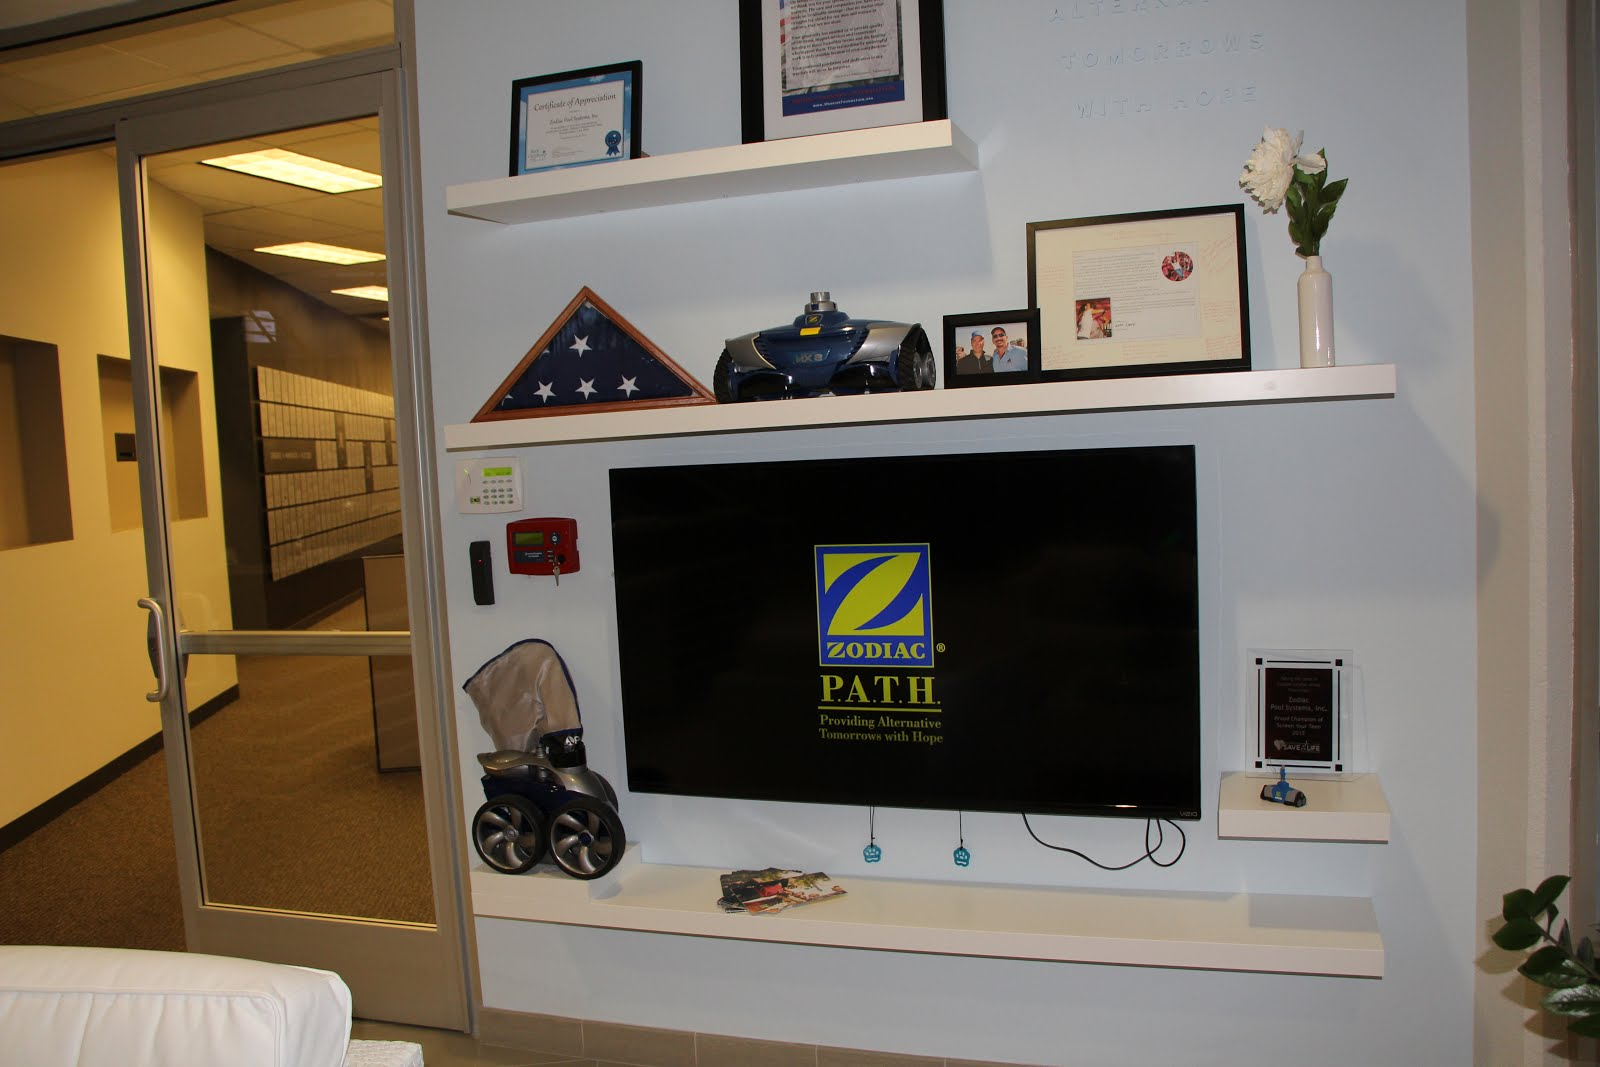 Pool Tips Troubleshooting Reviews Zodiac Pool Systems A Behind The Scenes Headquarters Tour